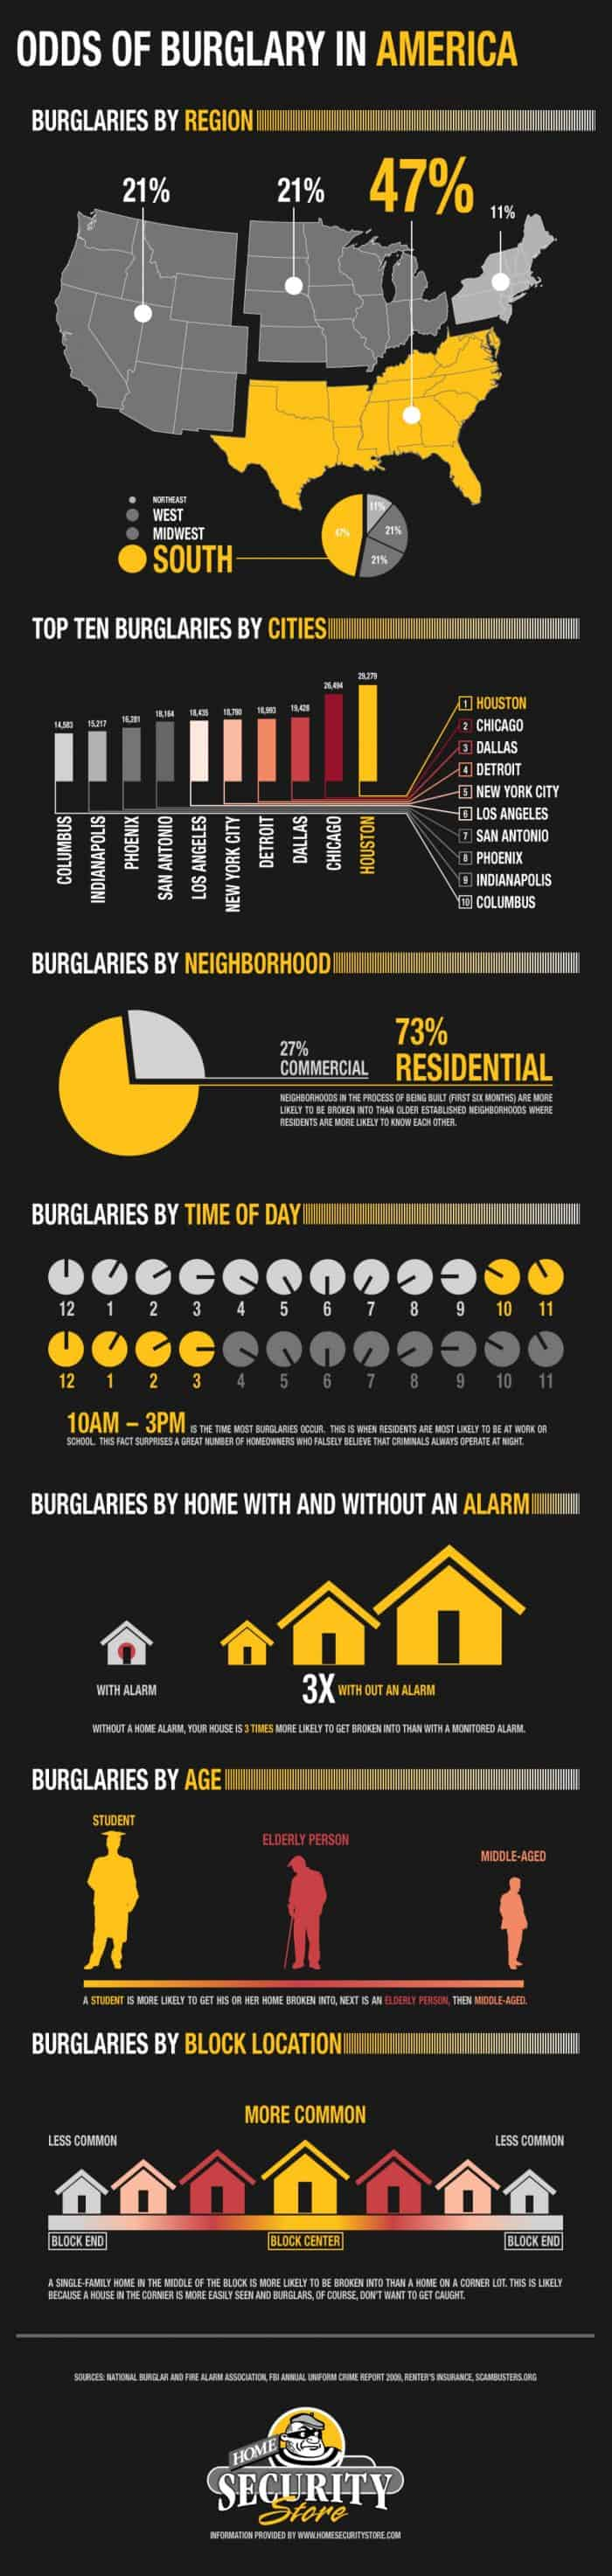 odds-of-burglary-in-america_50291c84011d5_w1500